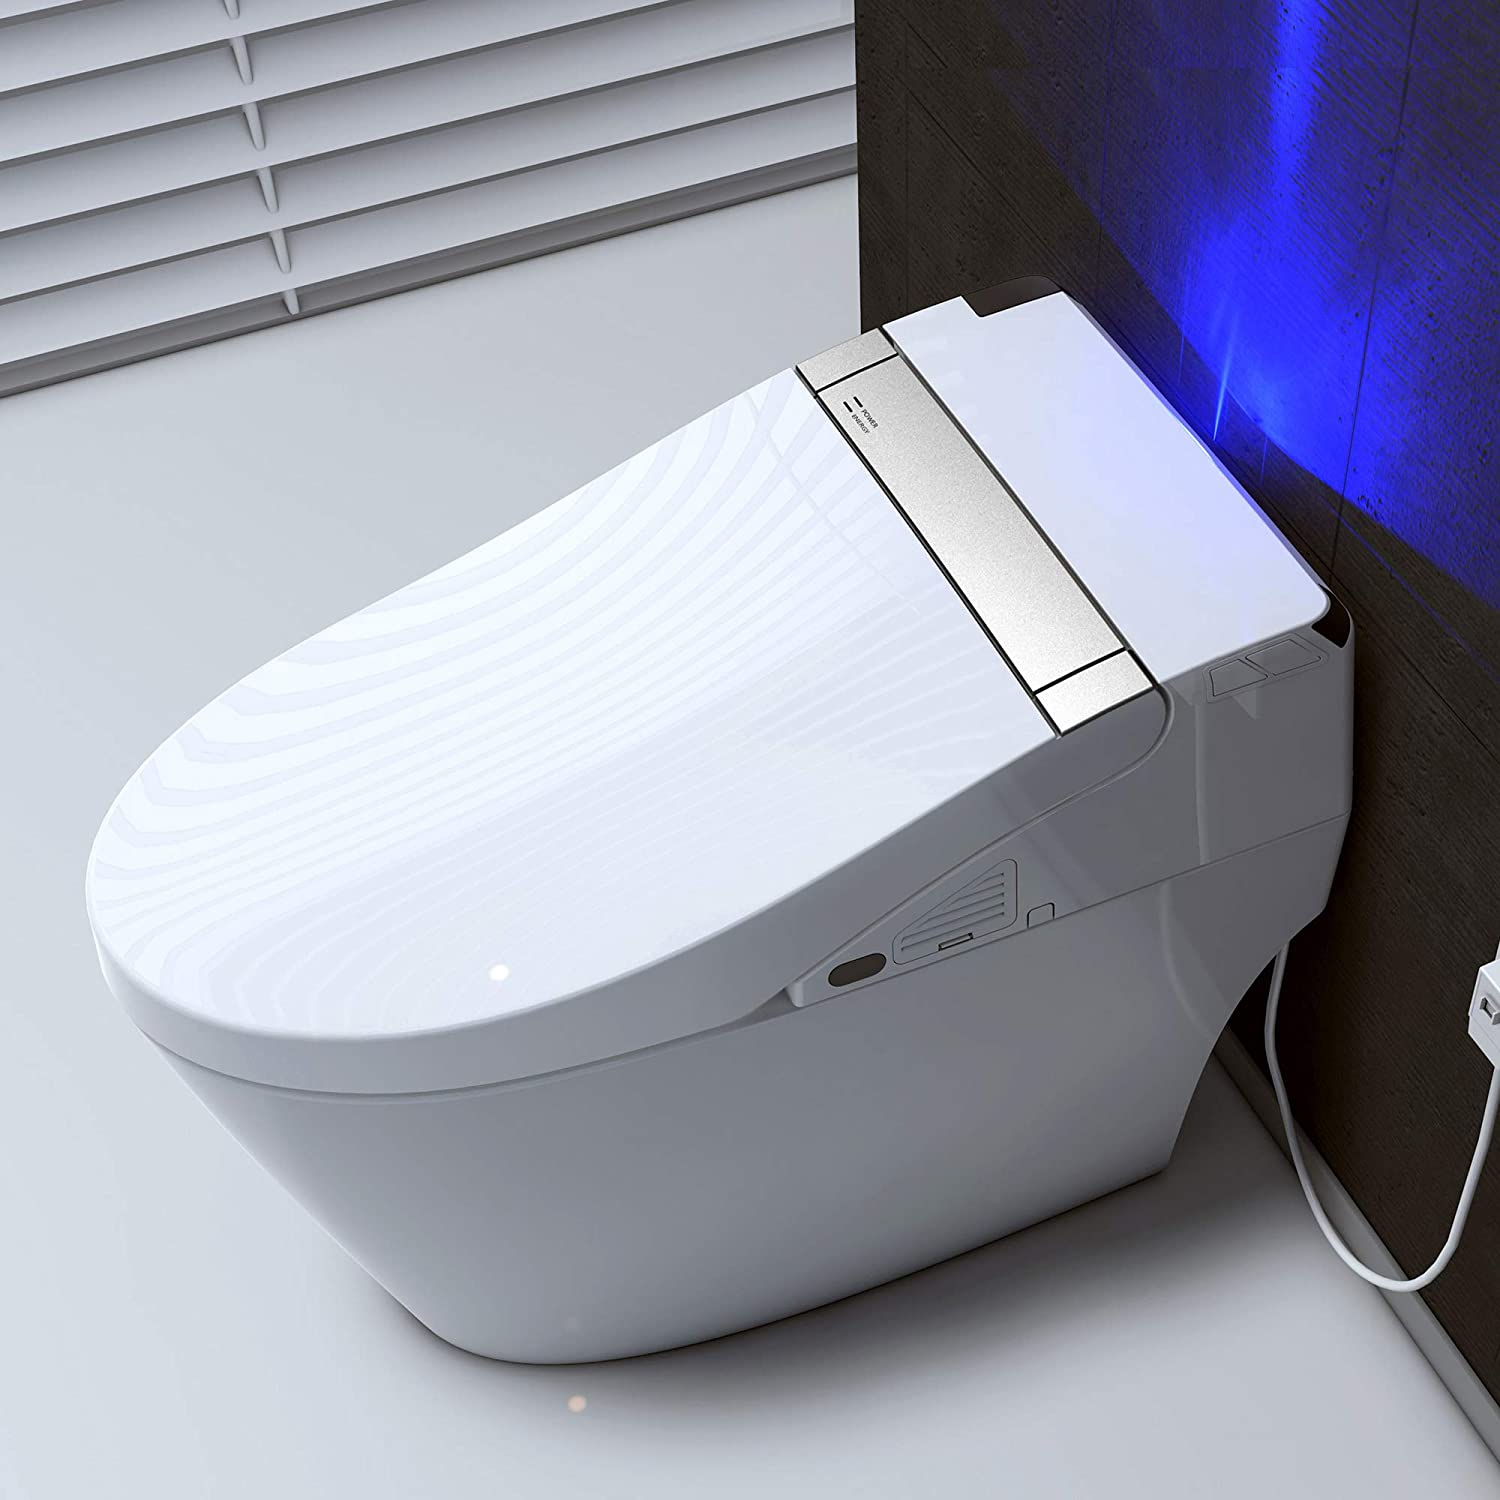 Woodbridge B 0960s B0960s Smart Bidet Seat Toilet With Integrated Dual Flush With Remote Control White Amazon Com